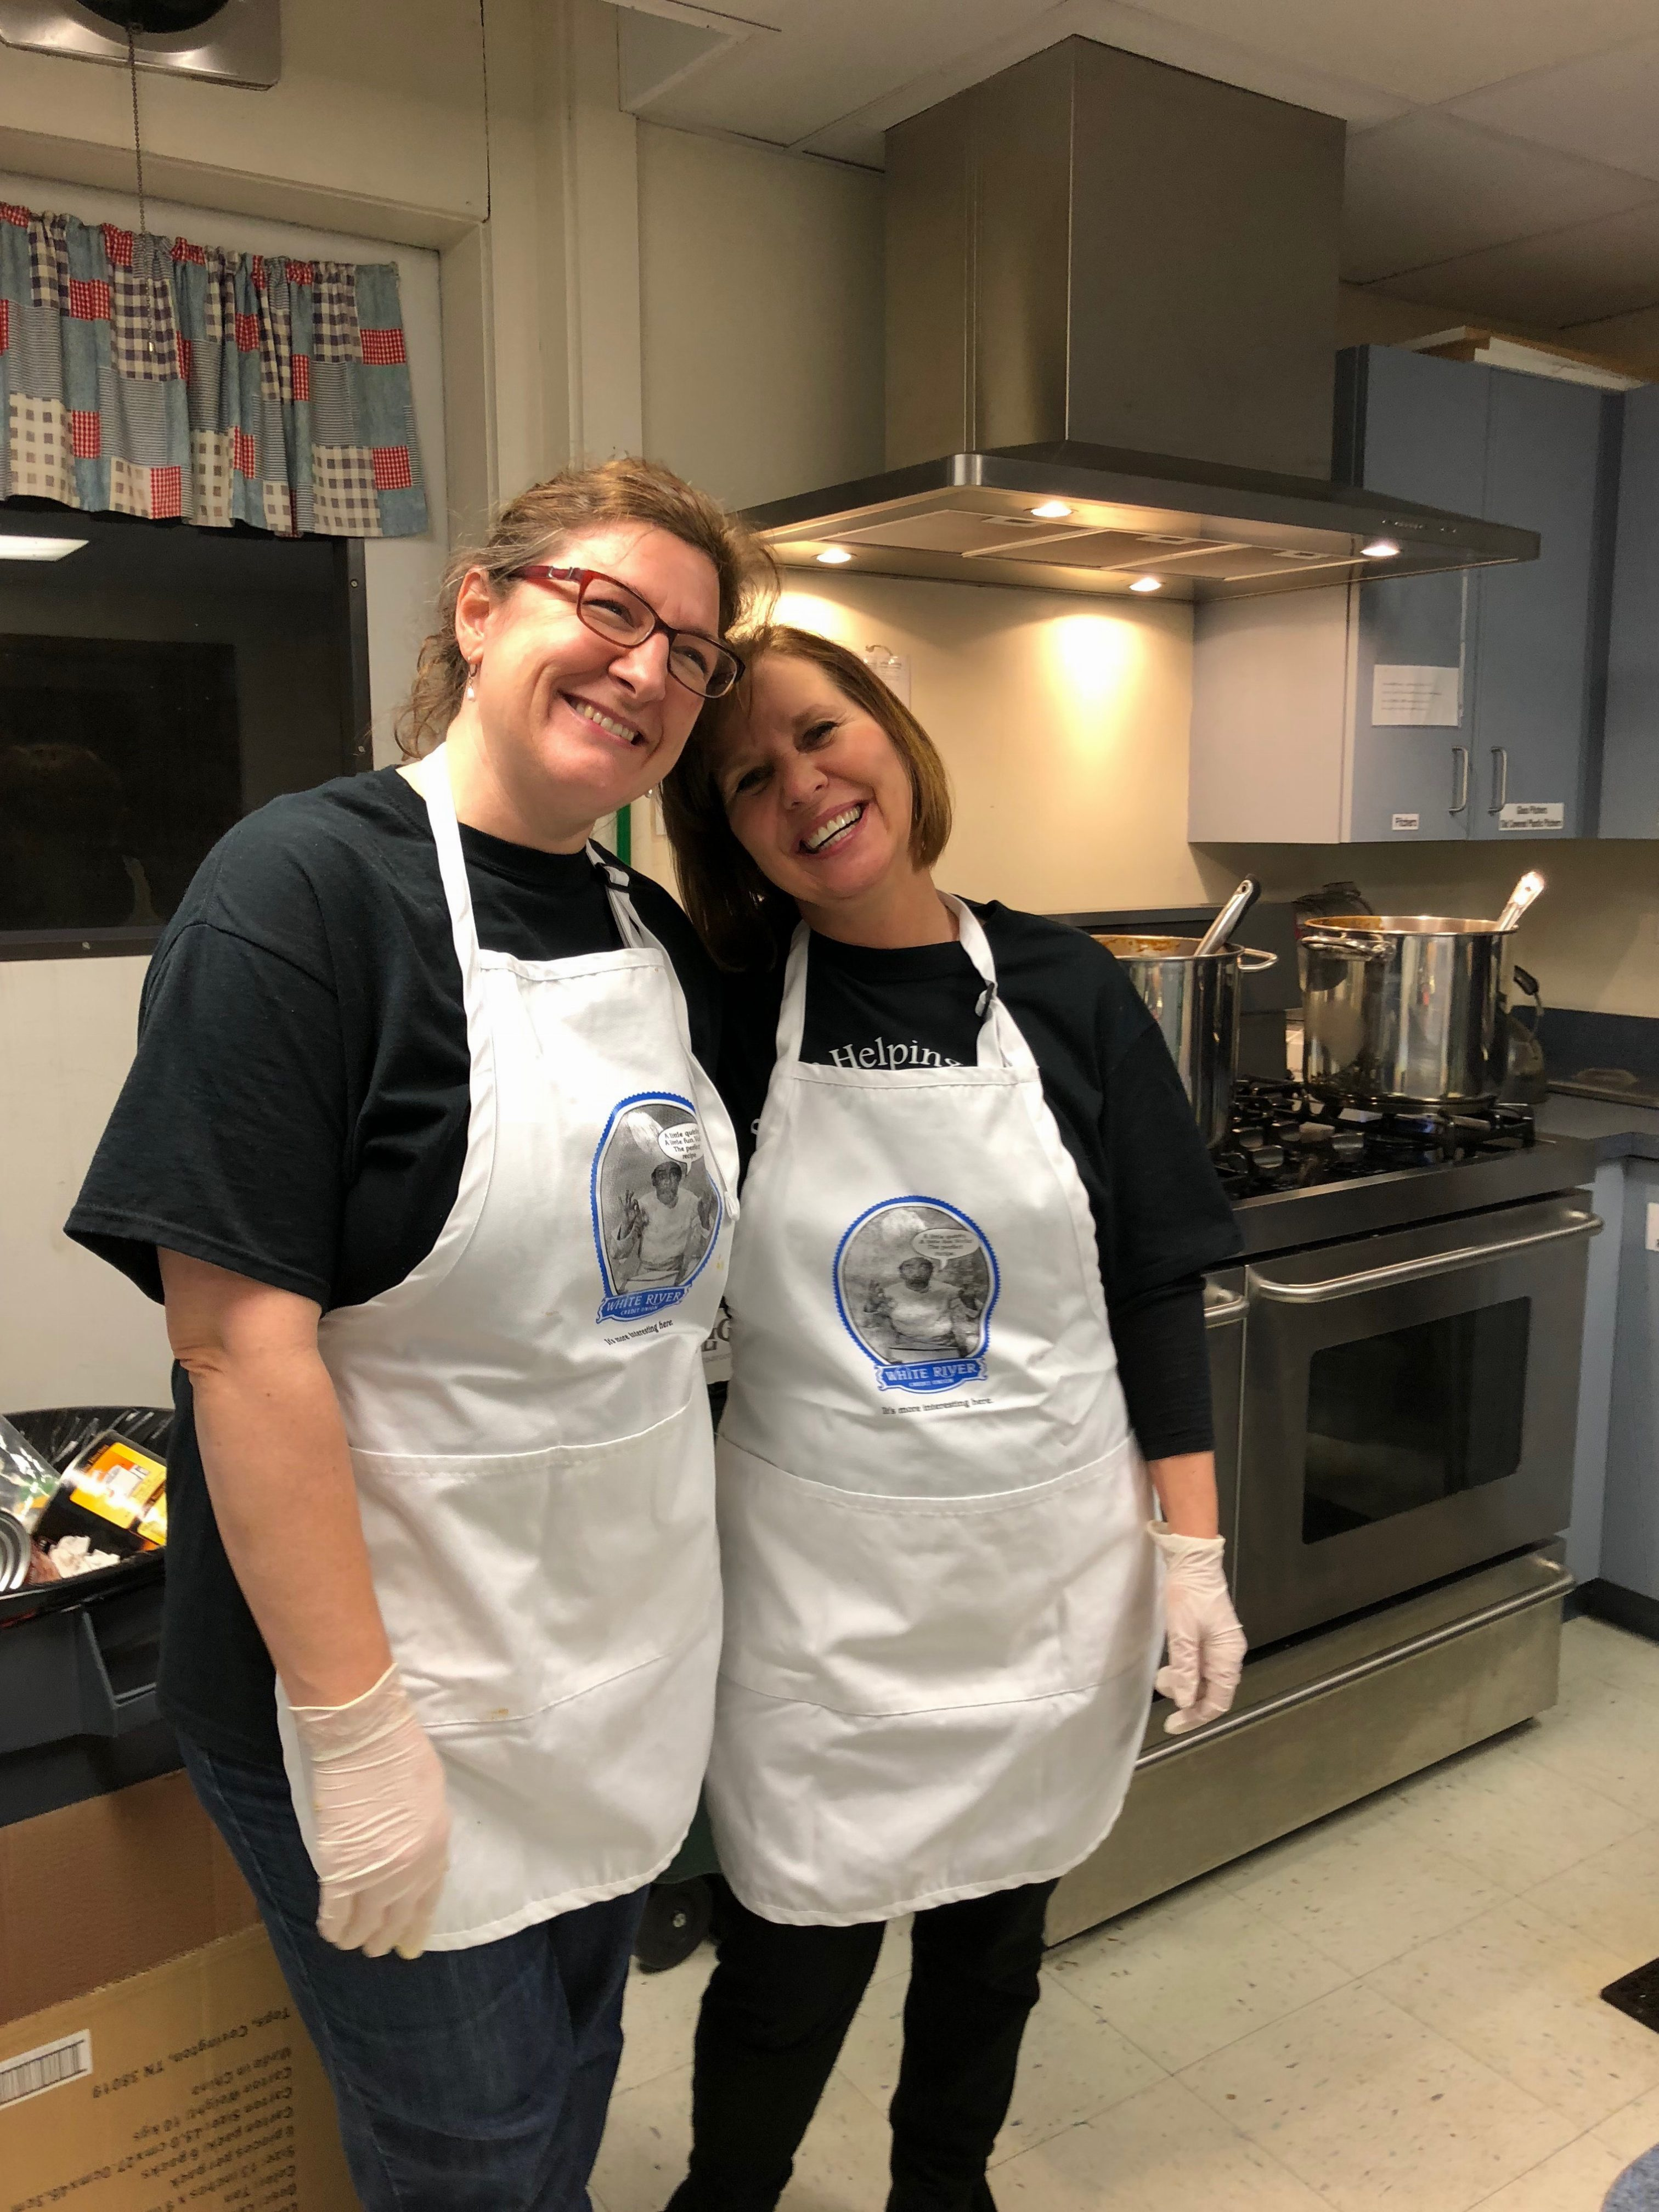 two women in aprons in a kitchen